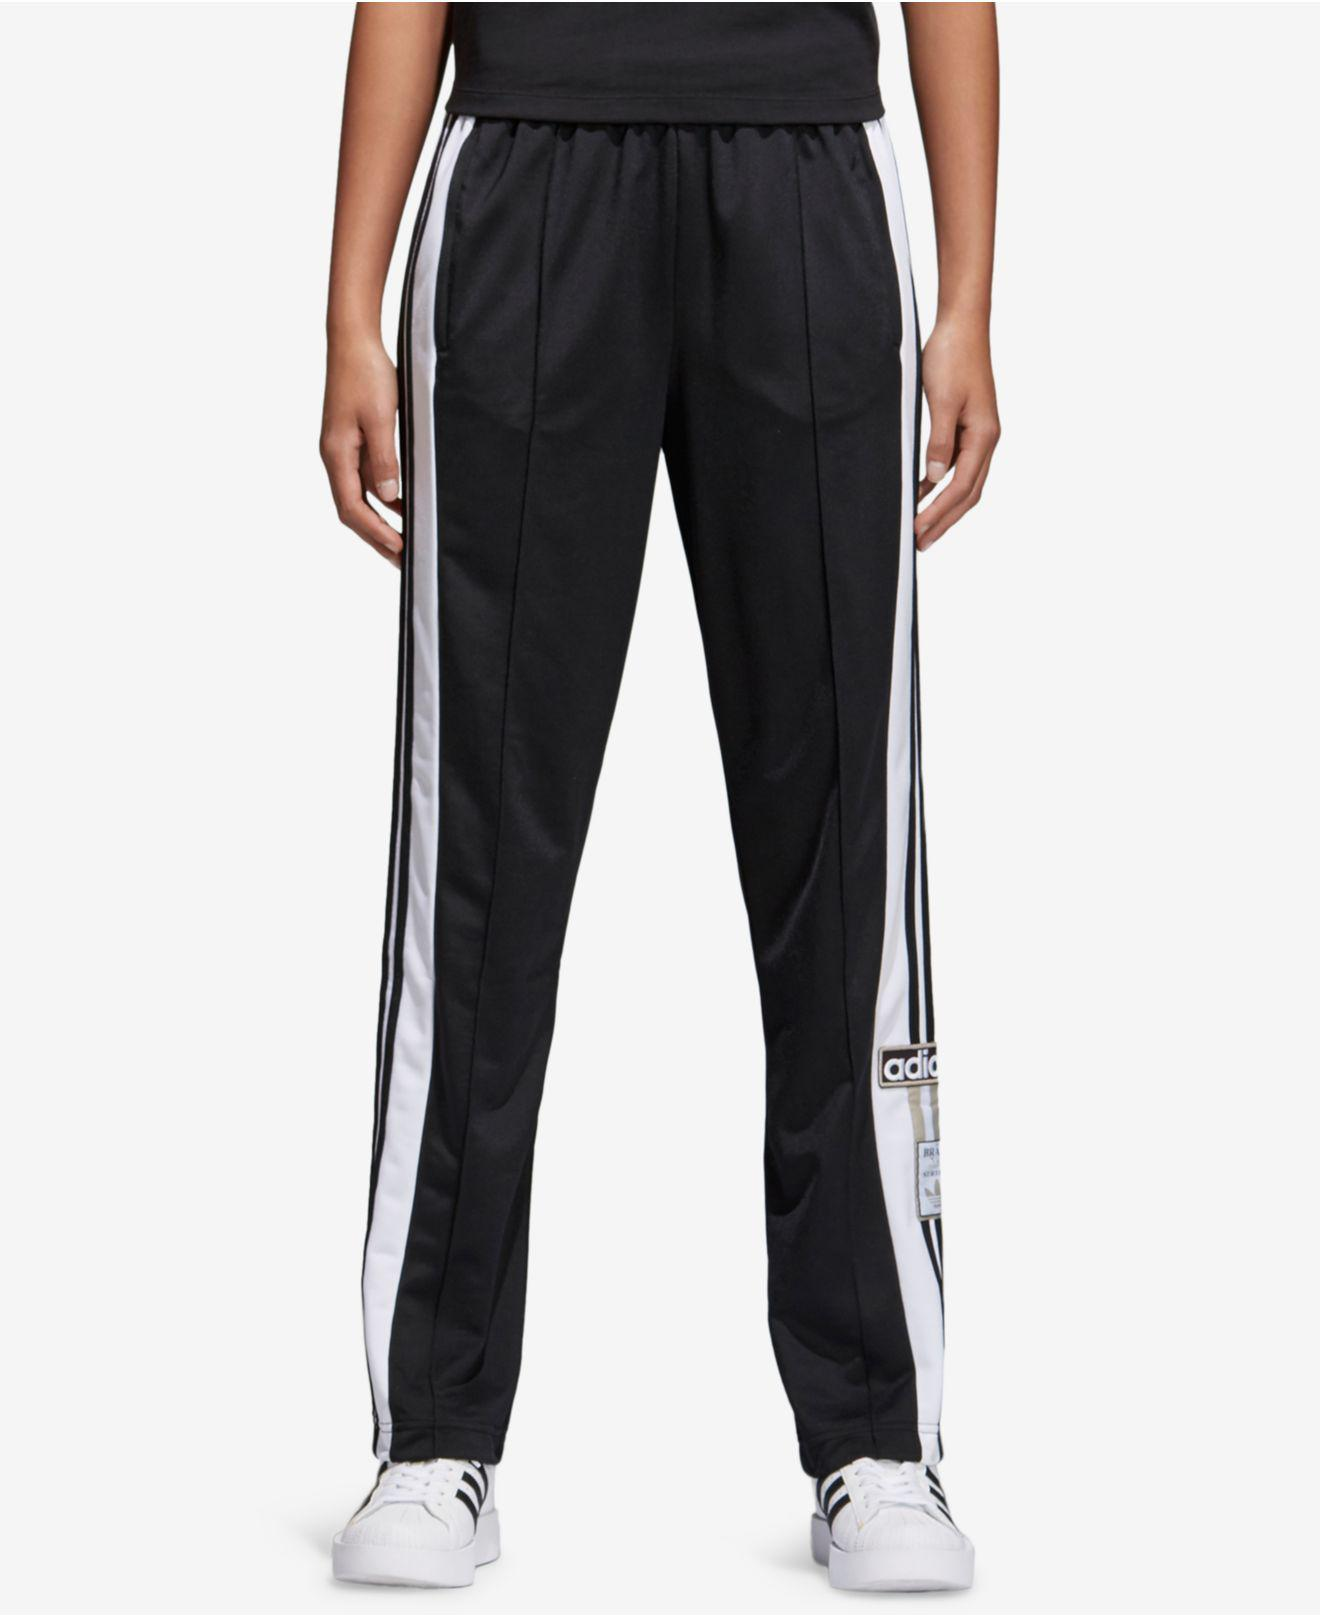 559492c7deac Lyst - adidas Originals Originals Adibreak Track Pants in Black - Save 30%